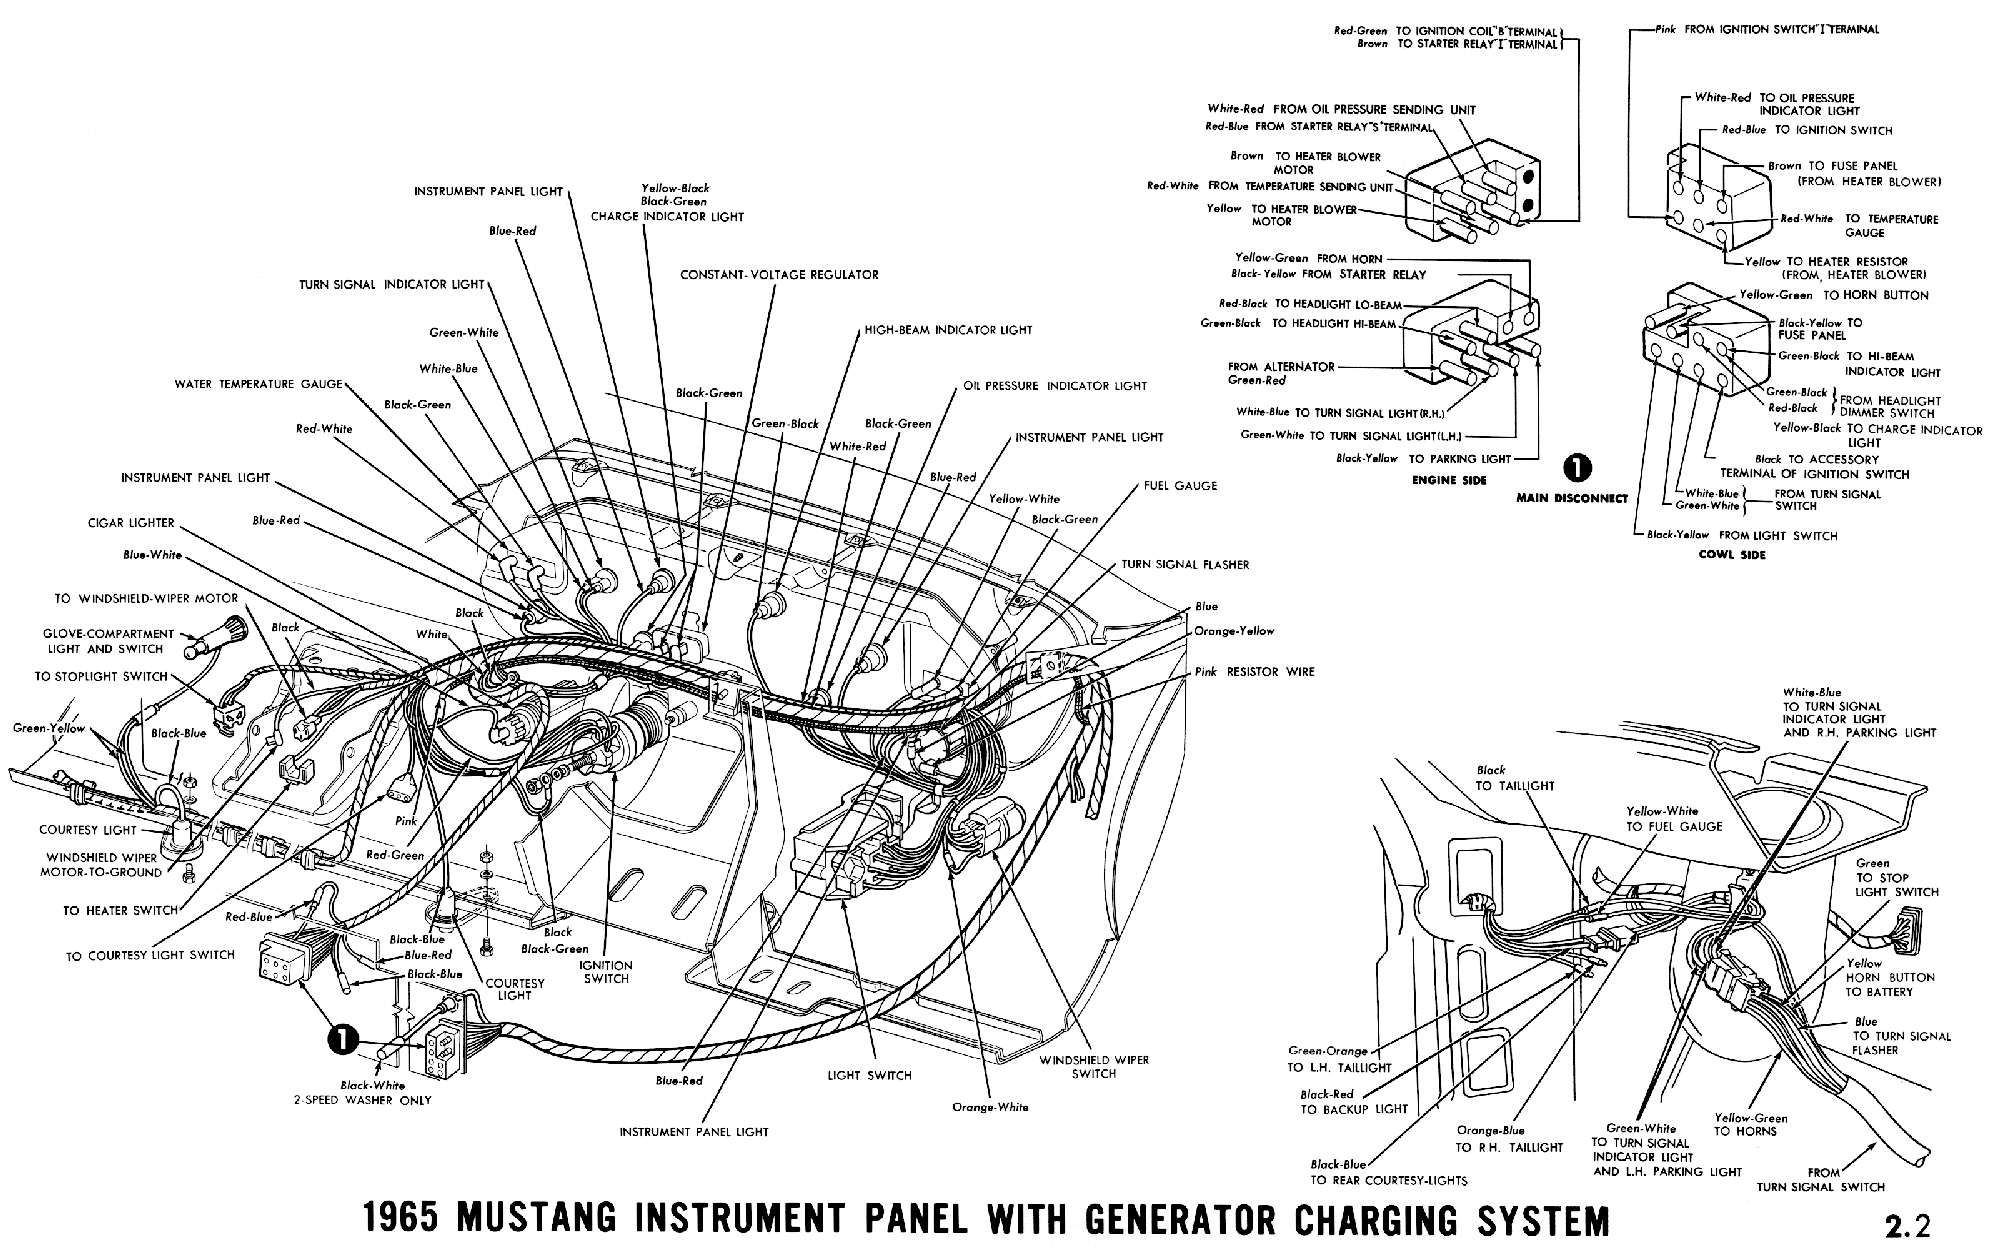 Service manual [Transmission Control 1964 Ford Mustang